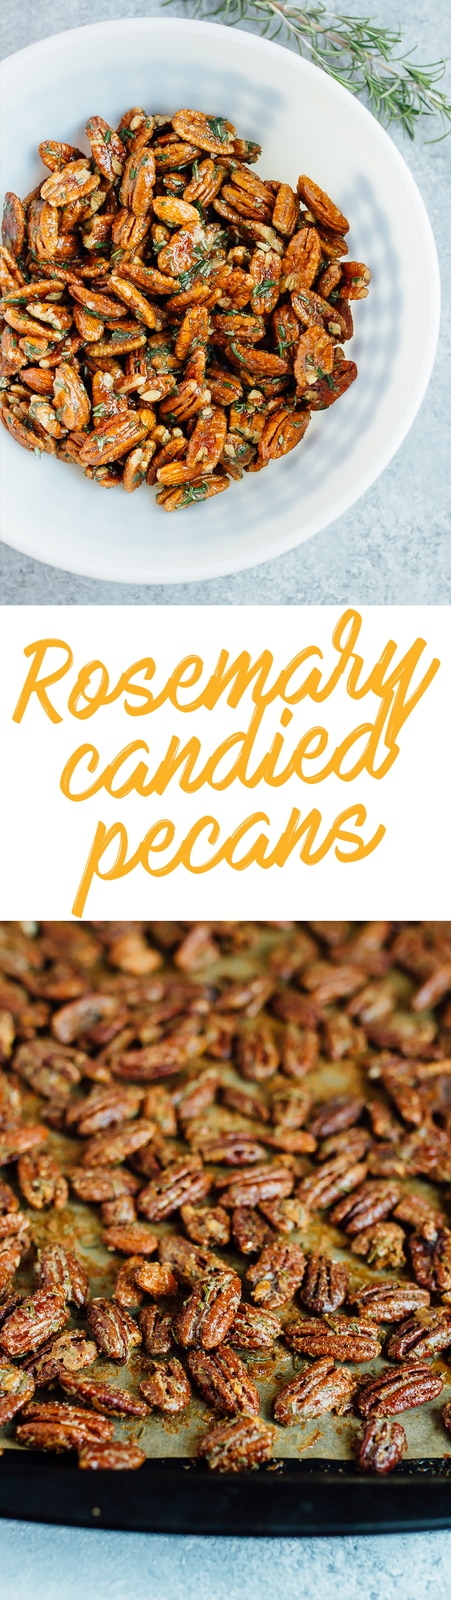 Rosemary Candied Pecans sweetened with coconut sugar. Crunchy, sweet, savory and perfect for snacking!